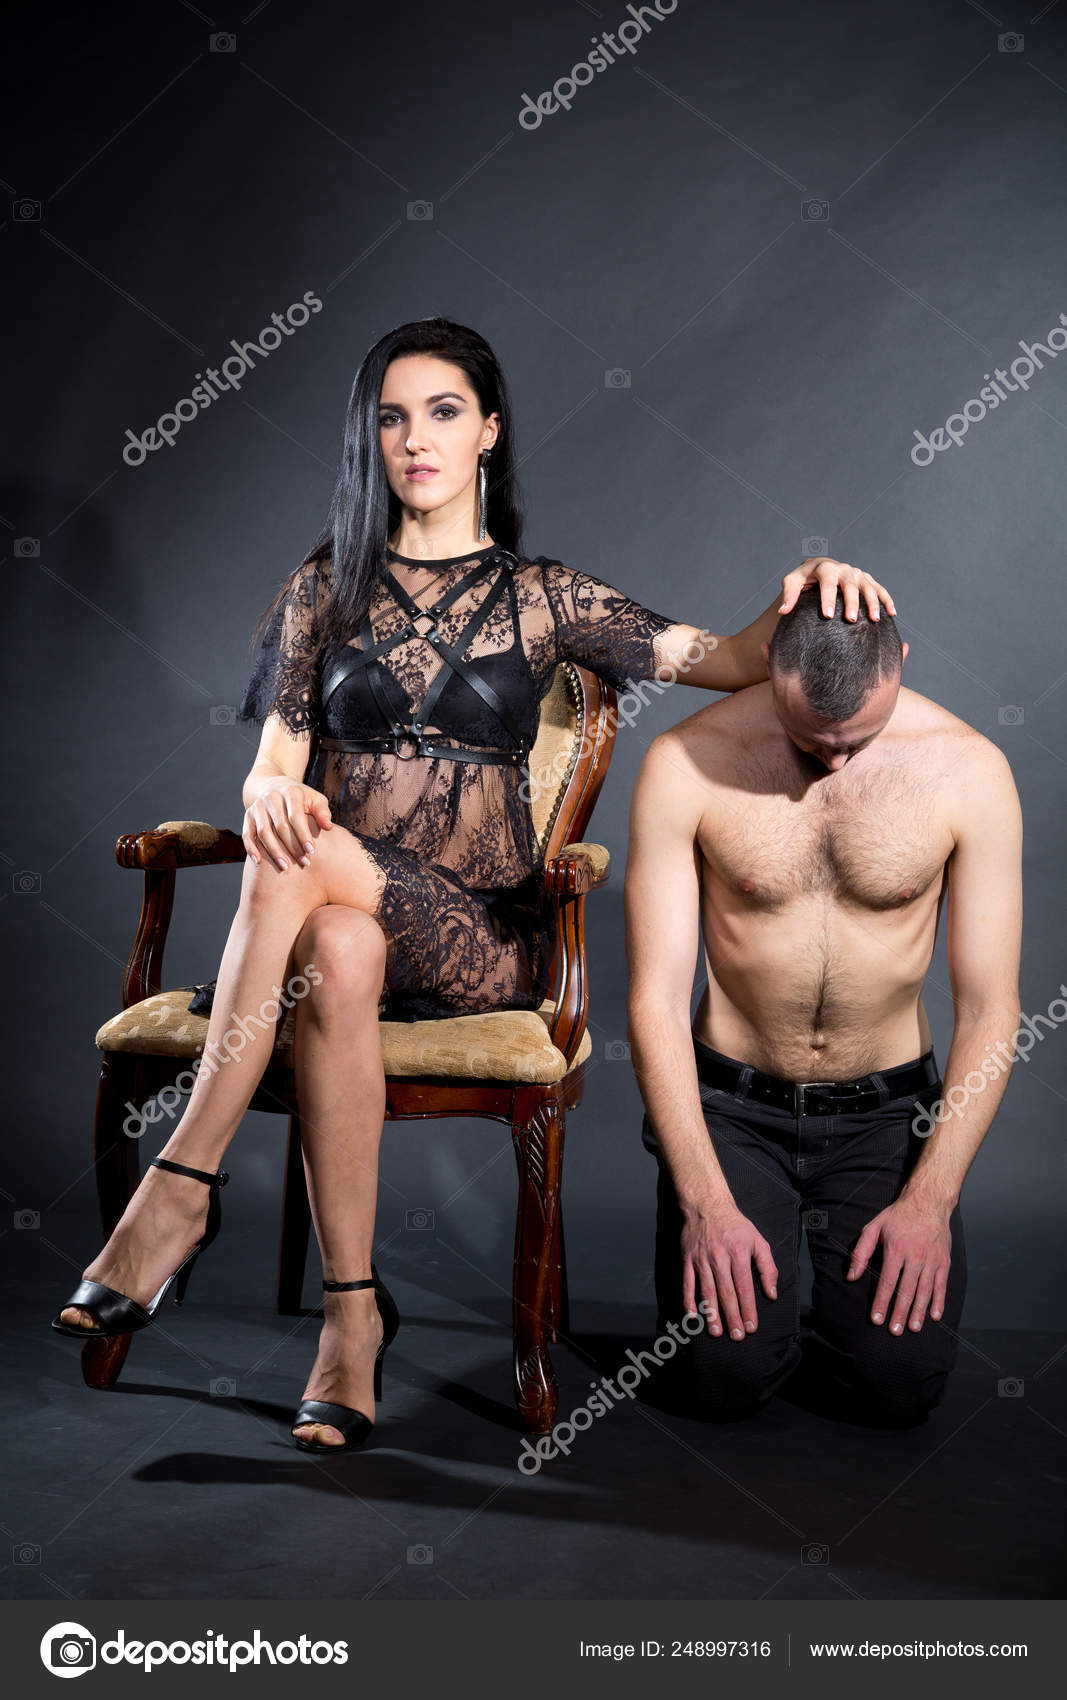 Party bdsm How to